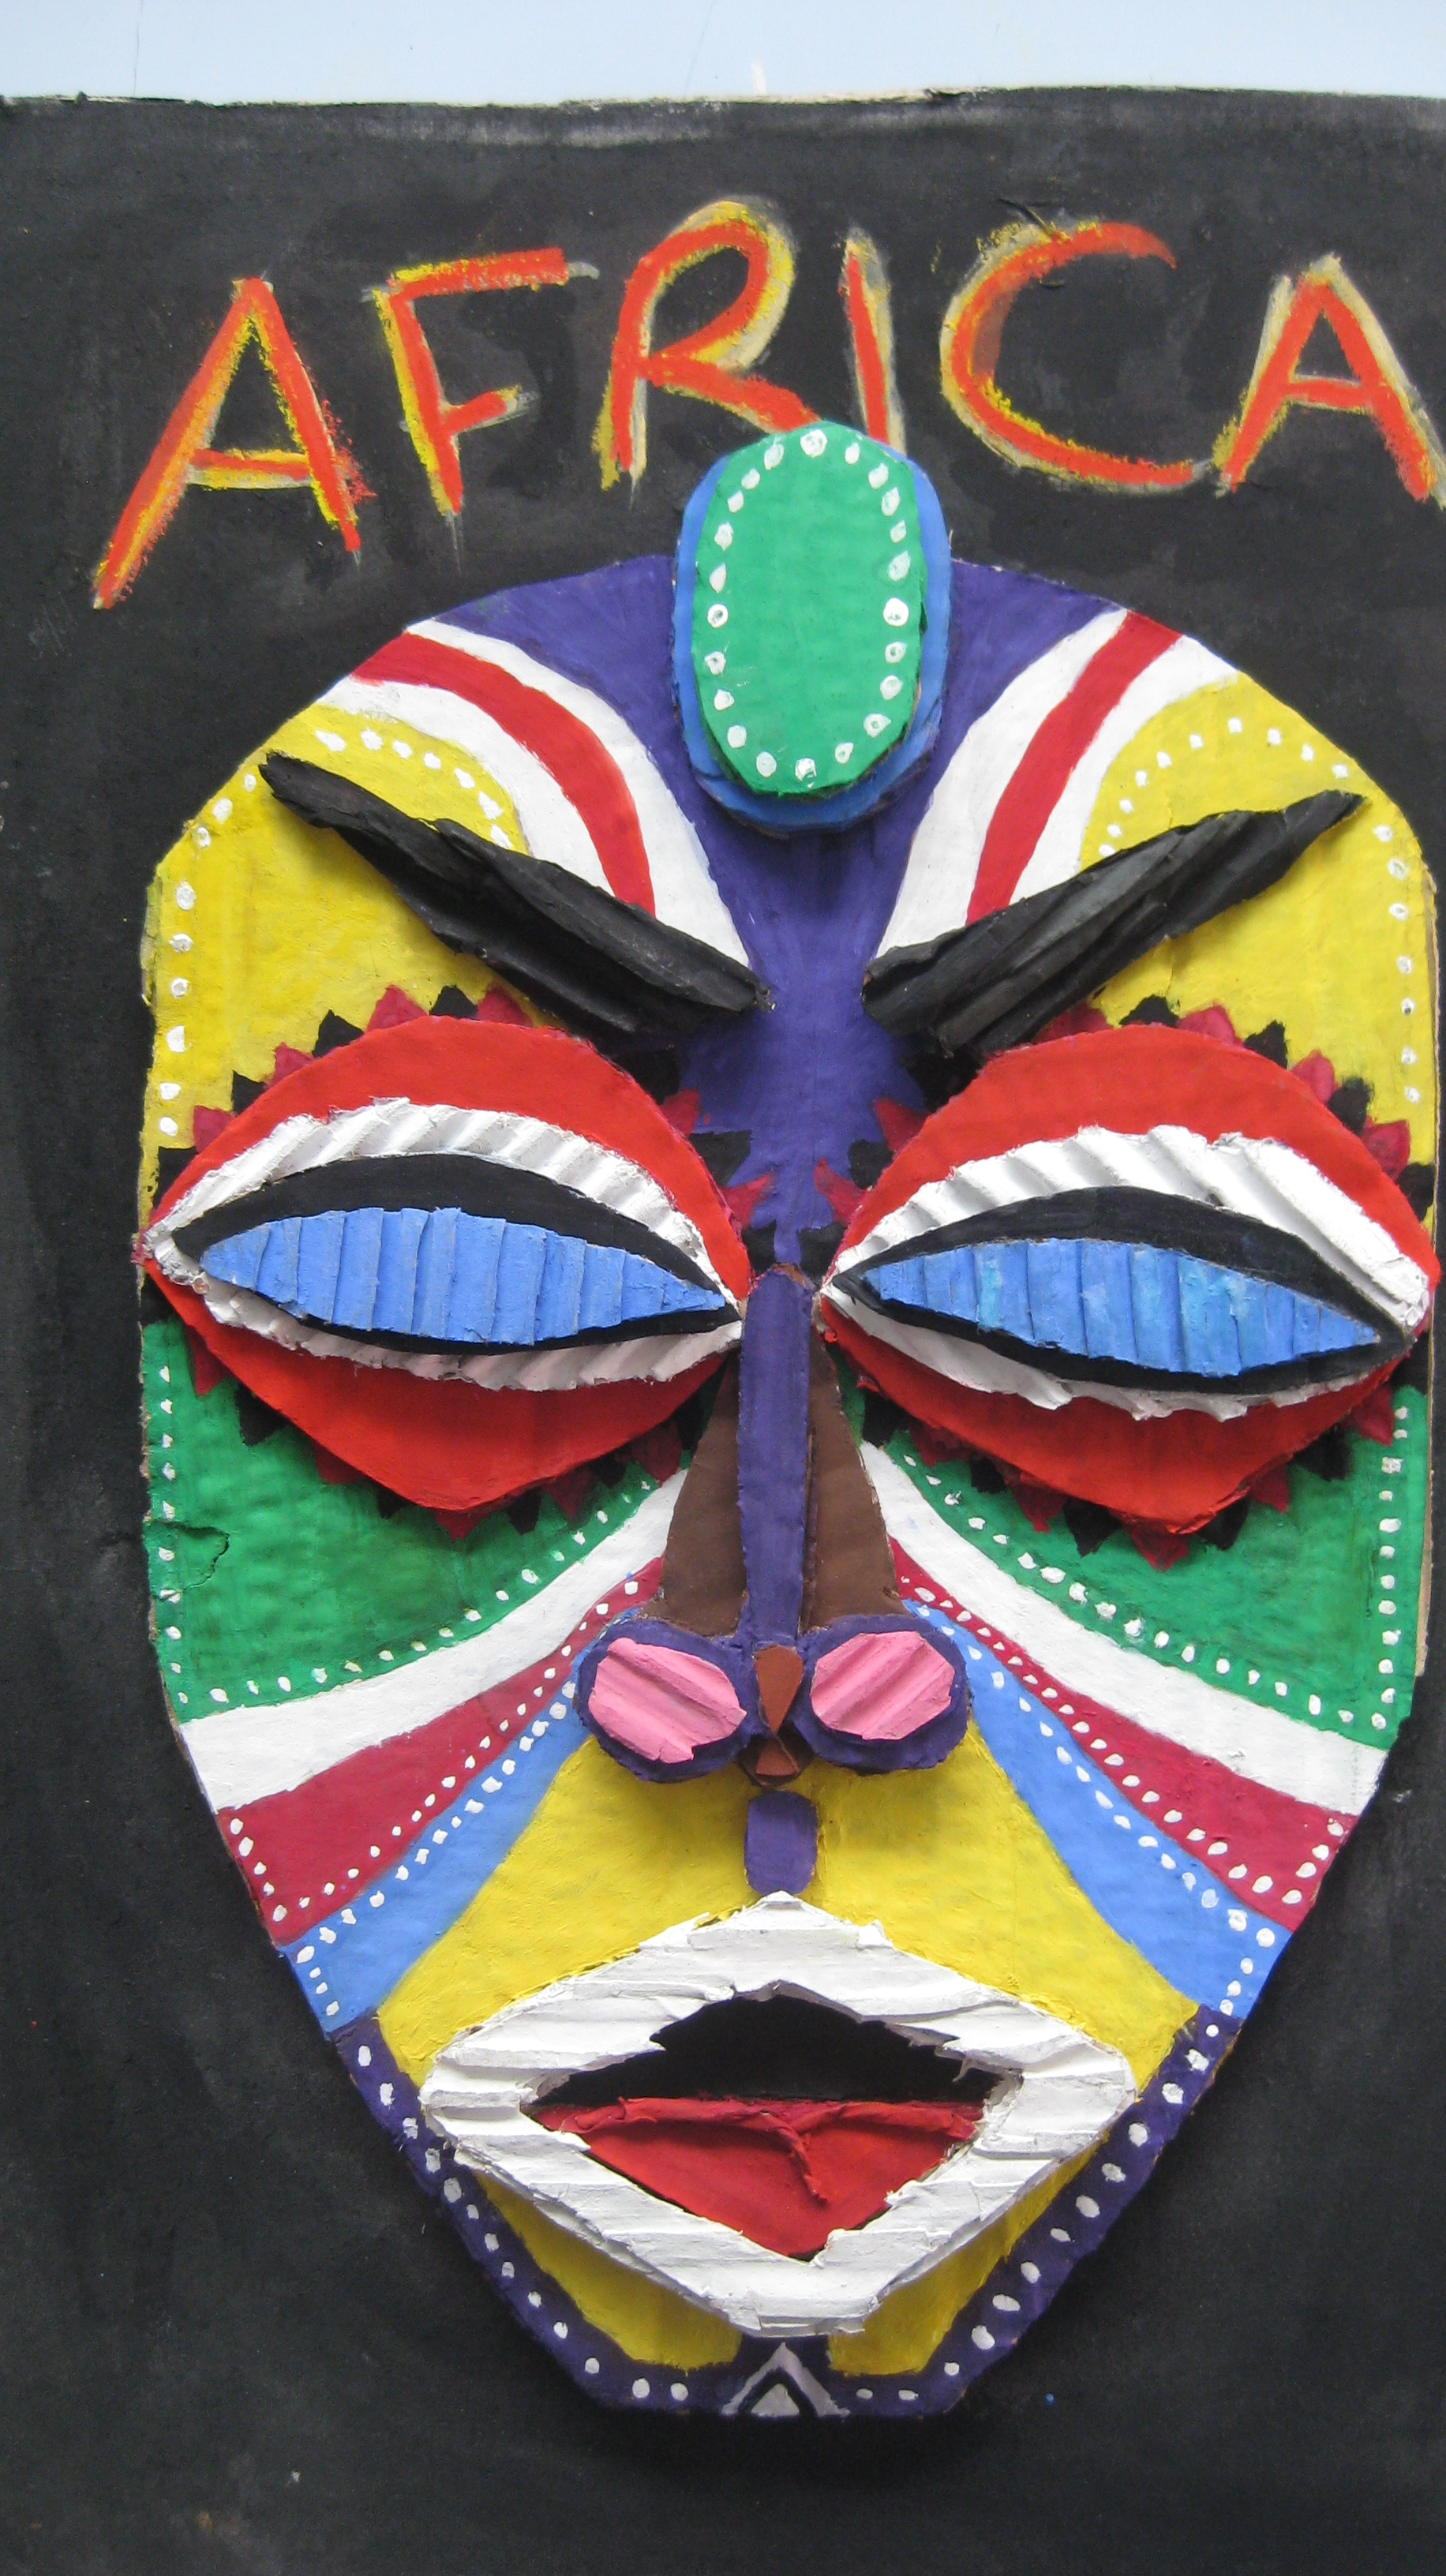 Lovely cardboard mask made from layering of cardboards for theme Africa